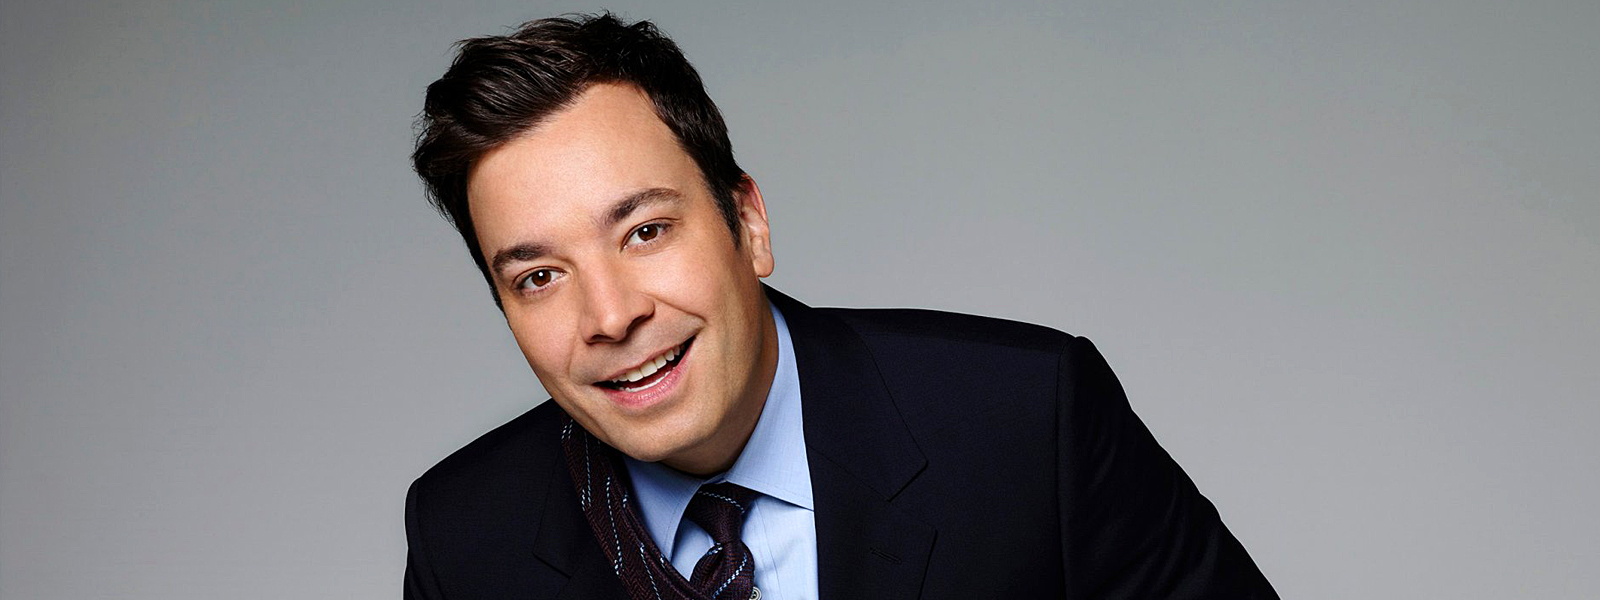 Good Quality Jimmy Fallon HD Wallpaper Wallpaper